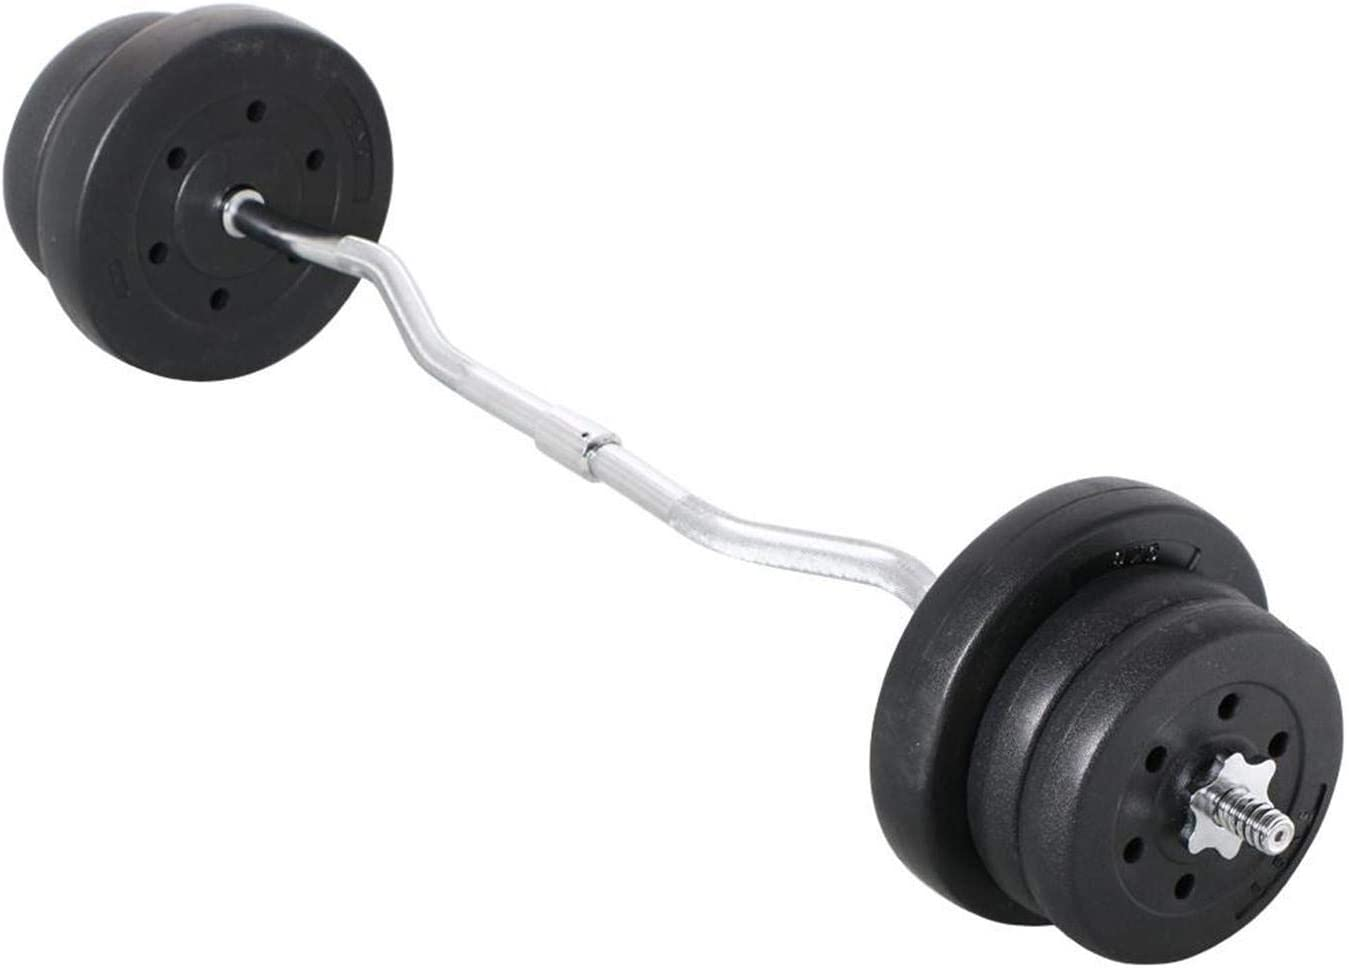 Amazon Com Yaheetech 55lb Olympic Barbell Dumbbell Weight Set Gym Lifting Exercise Workout Olympic Bar Curl Bar Sports Outdoors